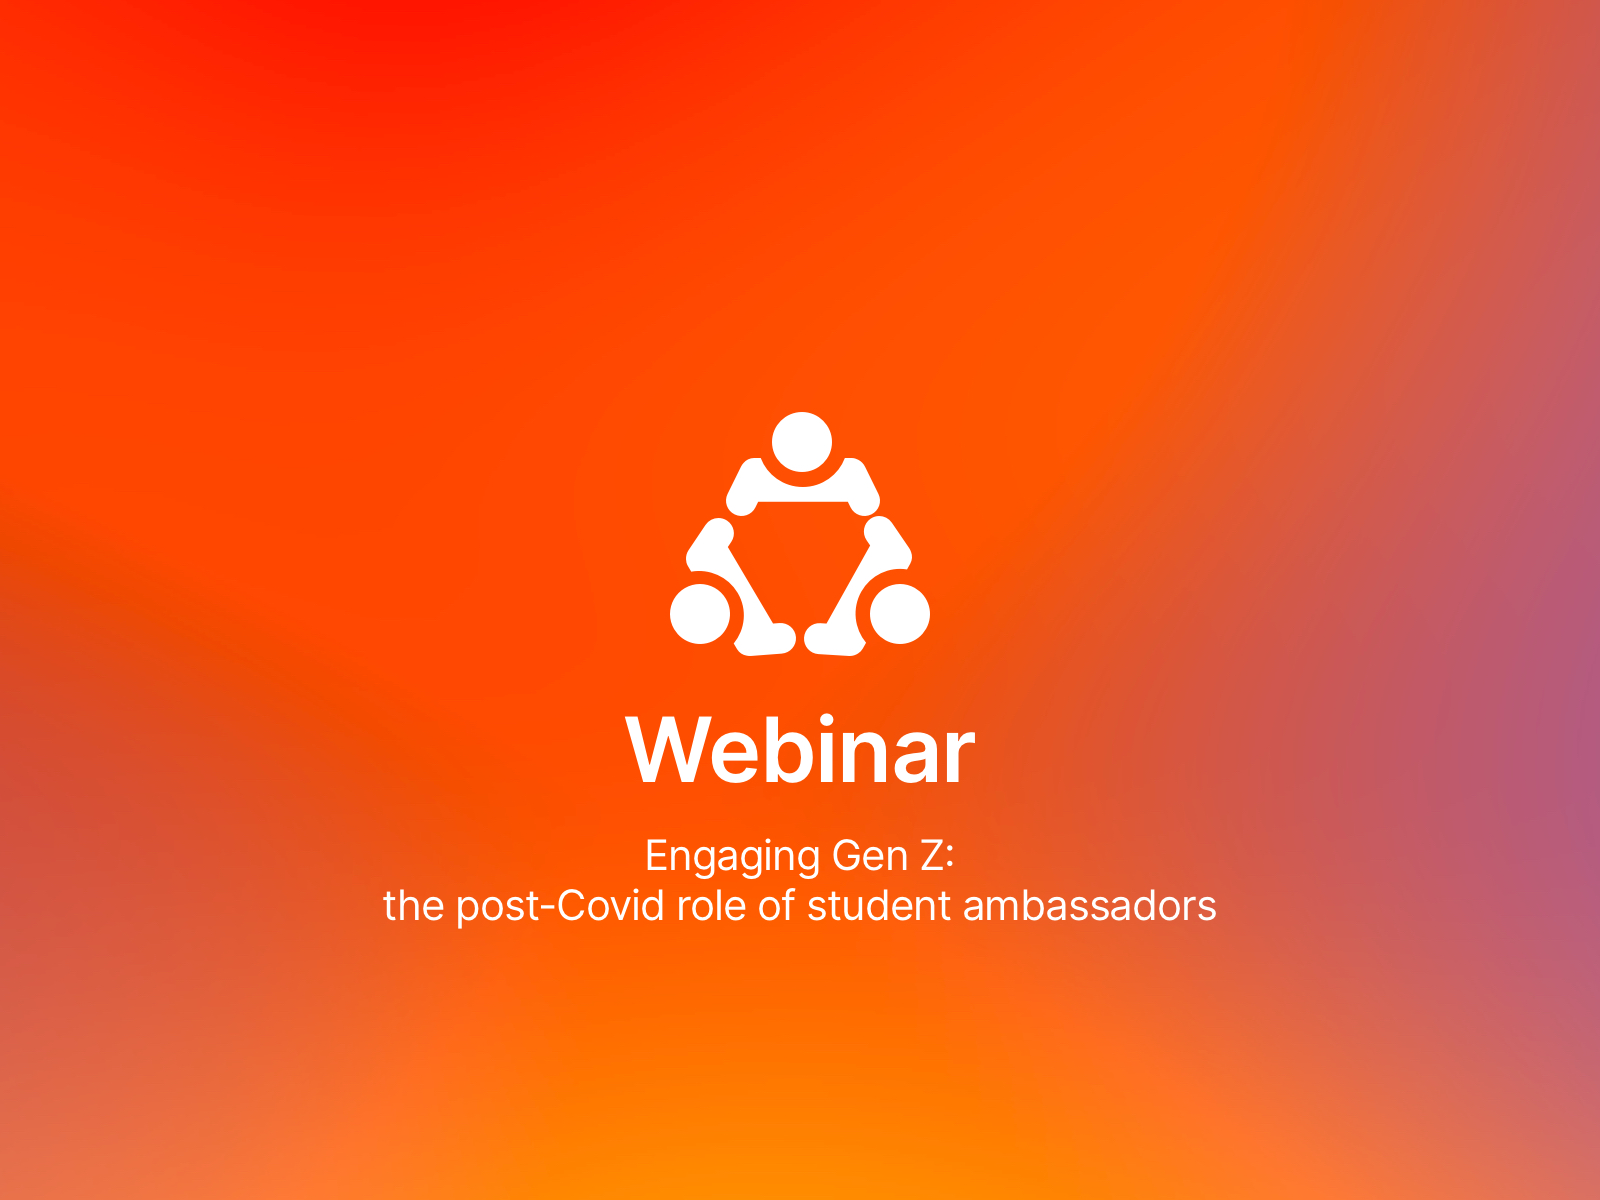 Engaging Gen Z: the post-Covid role of student ambassadors